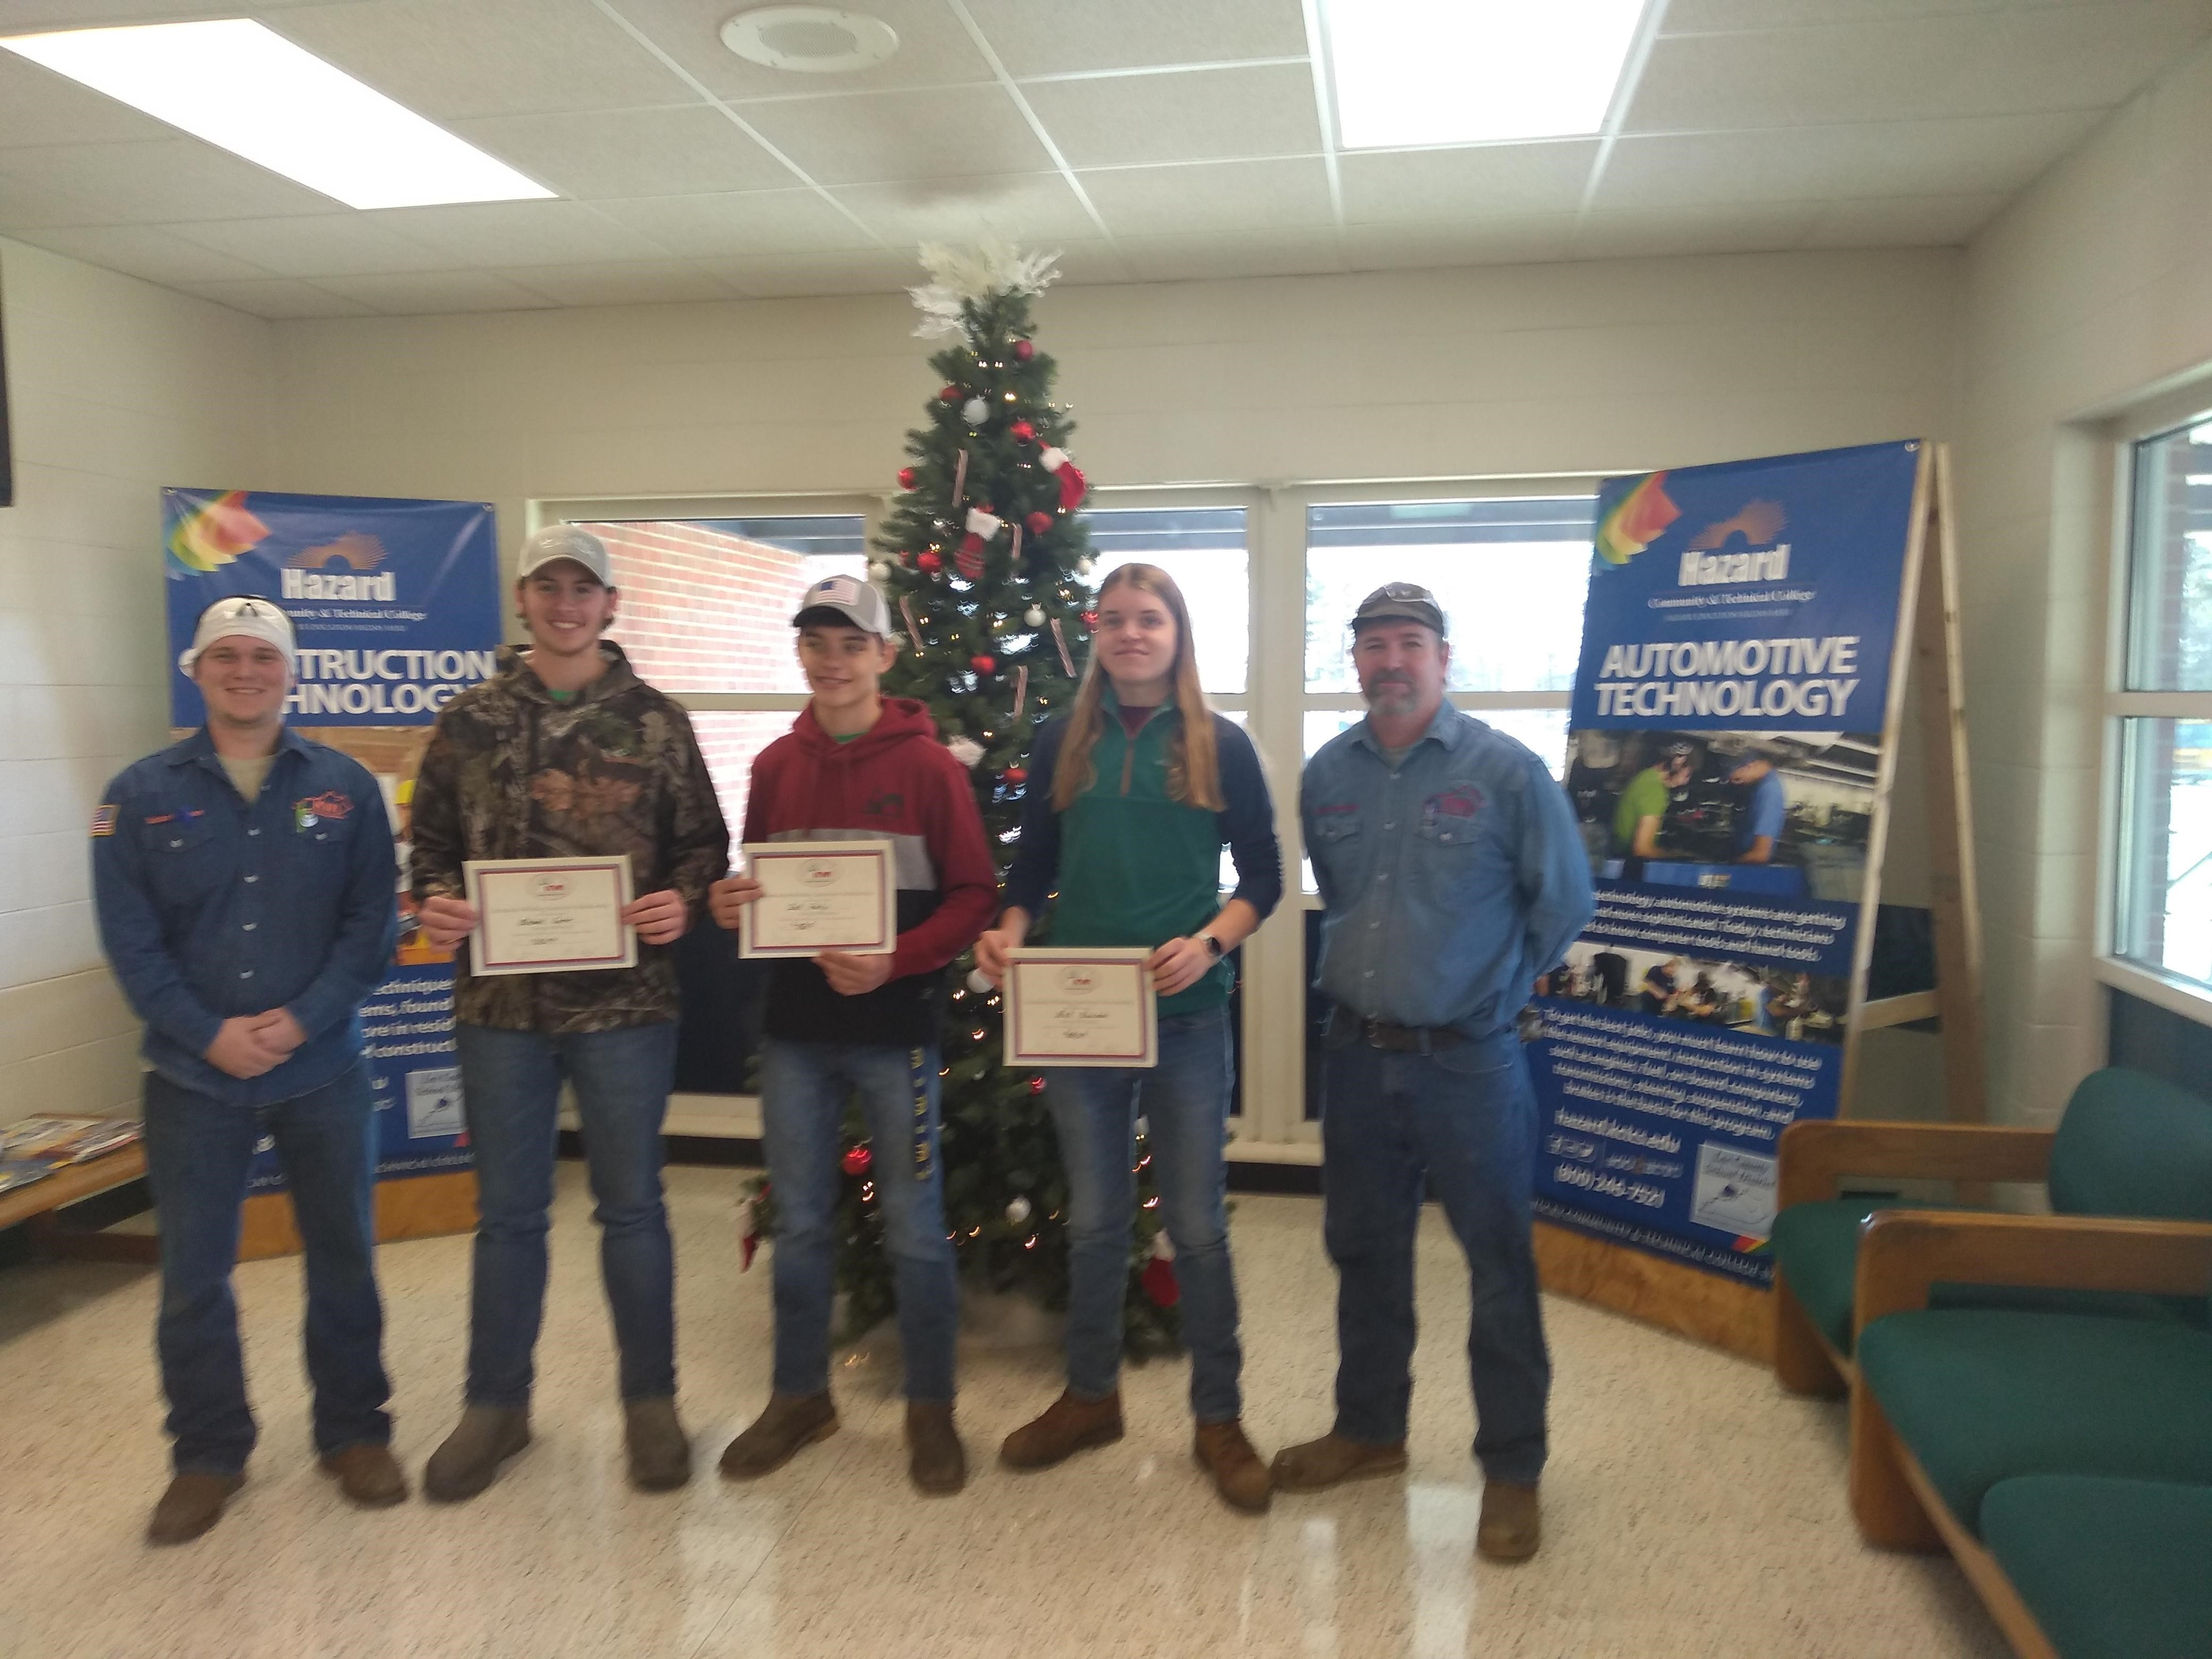 Student winning KWI welding scholarships